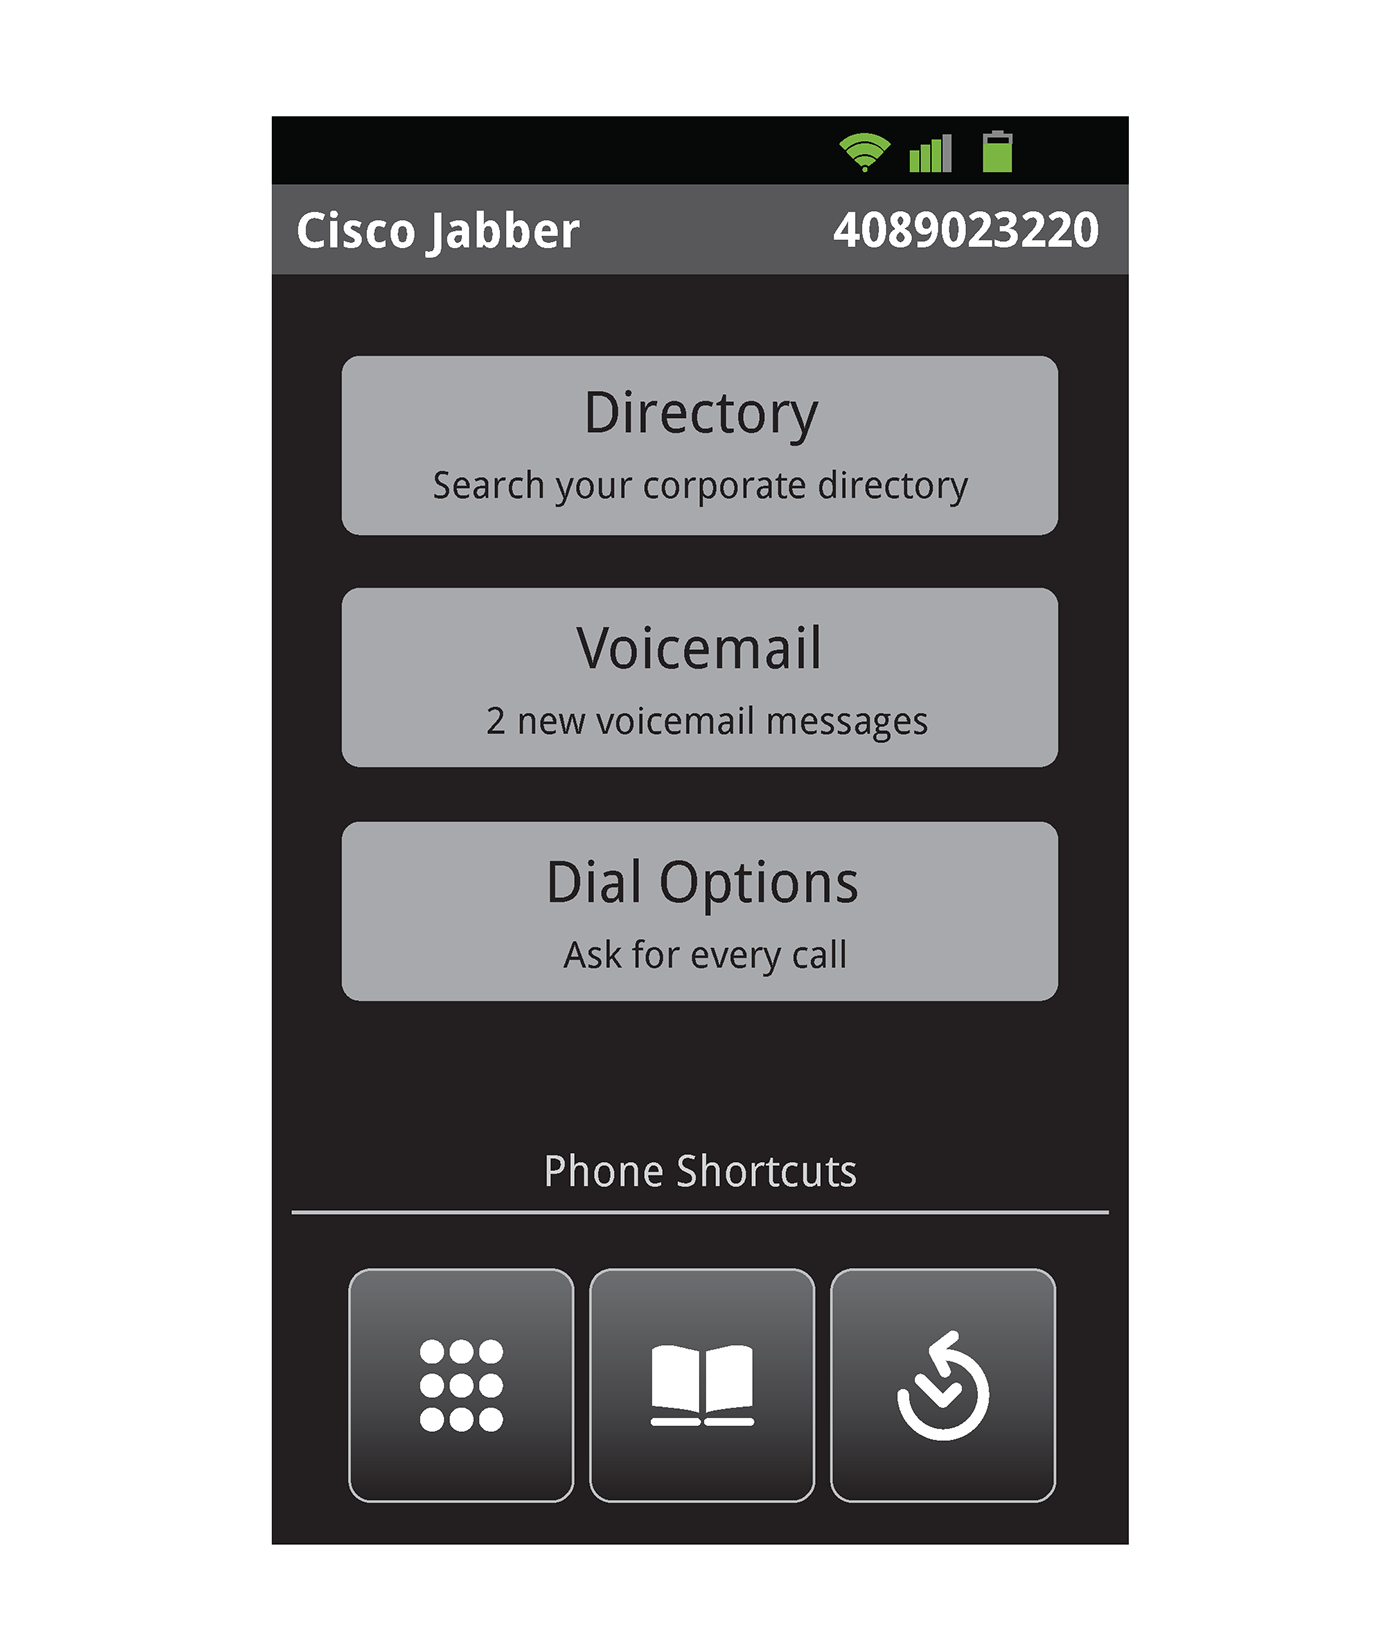 Voicemail Ux For Cisco Jabber For Android On Behance